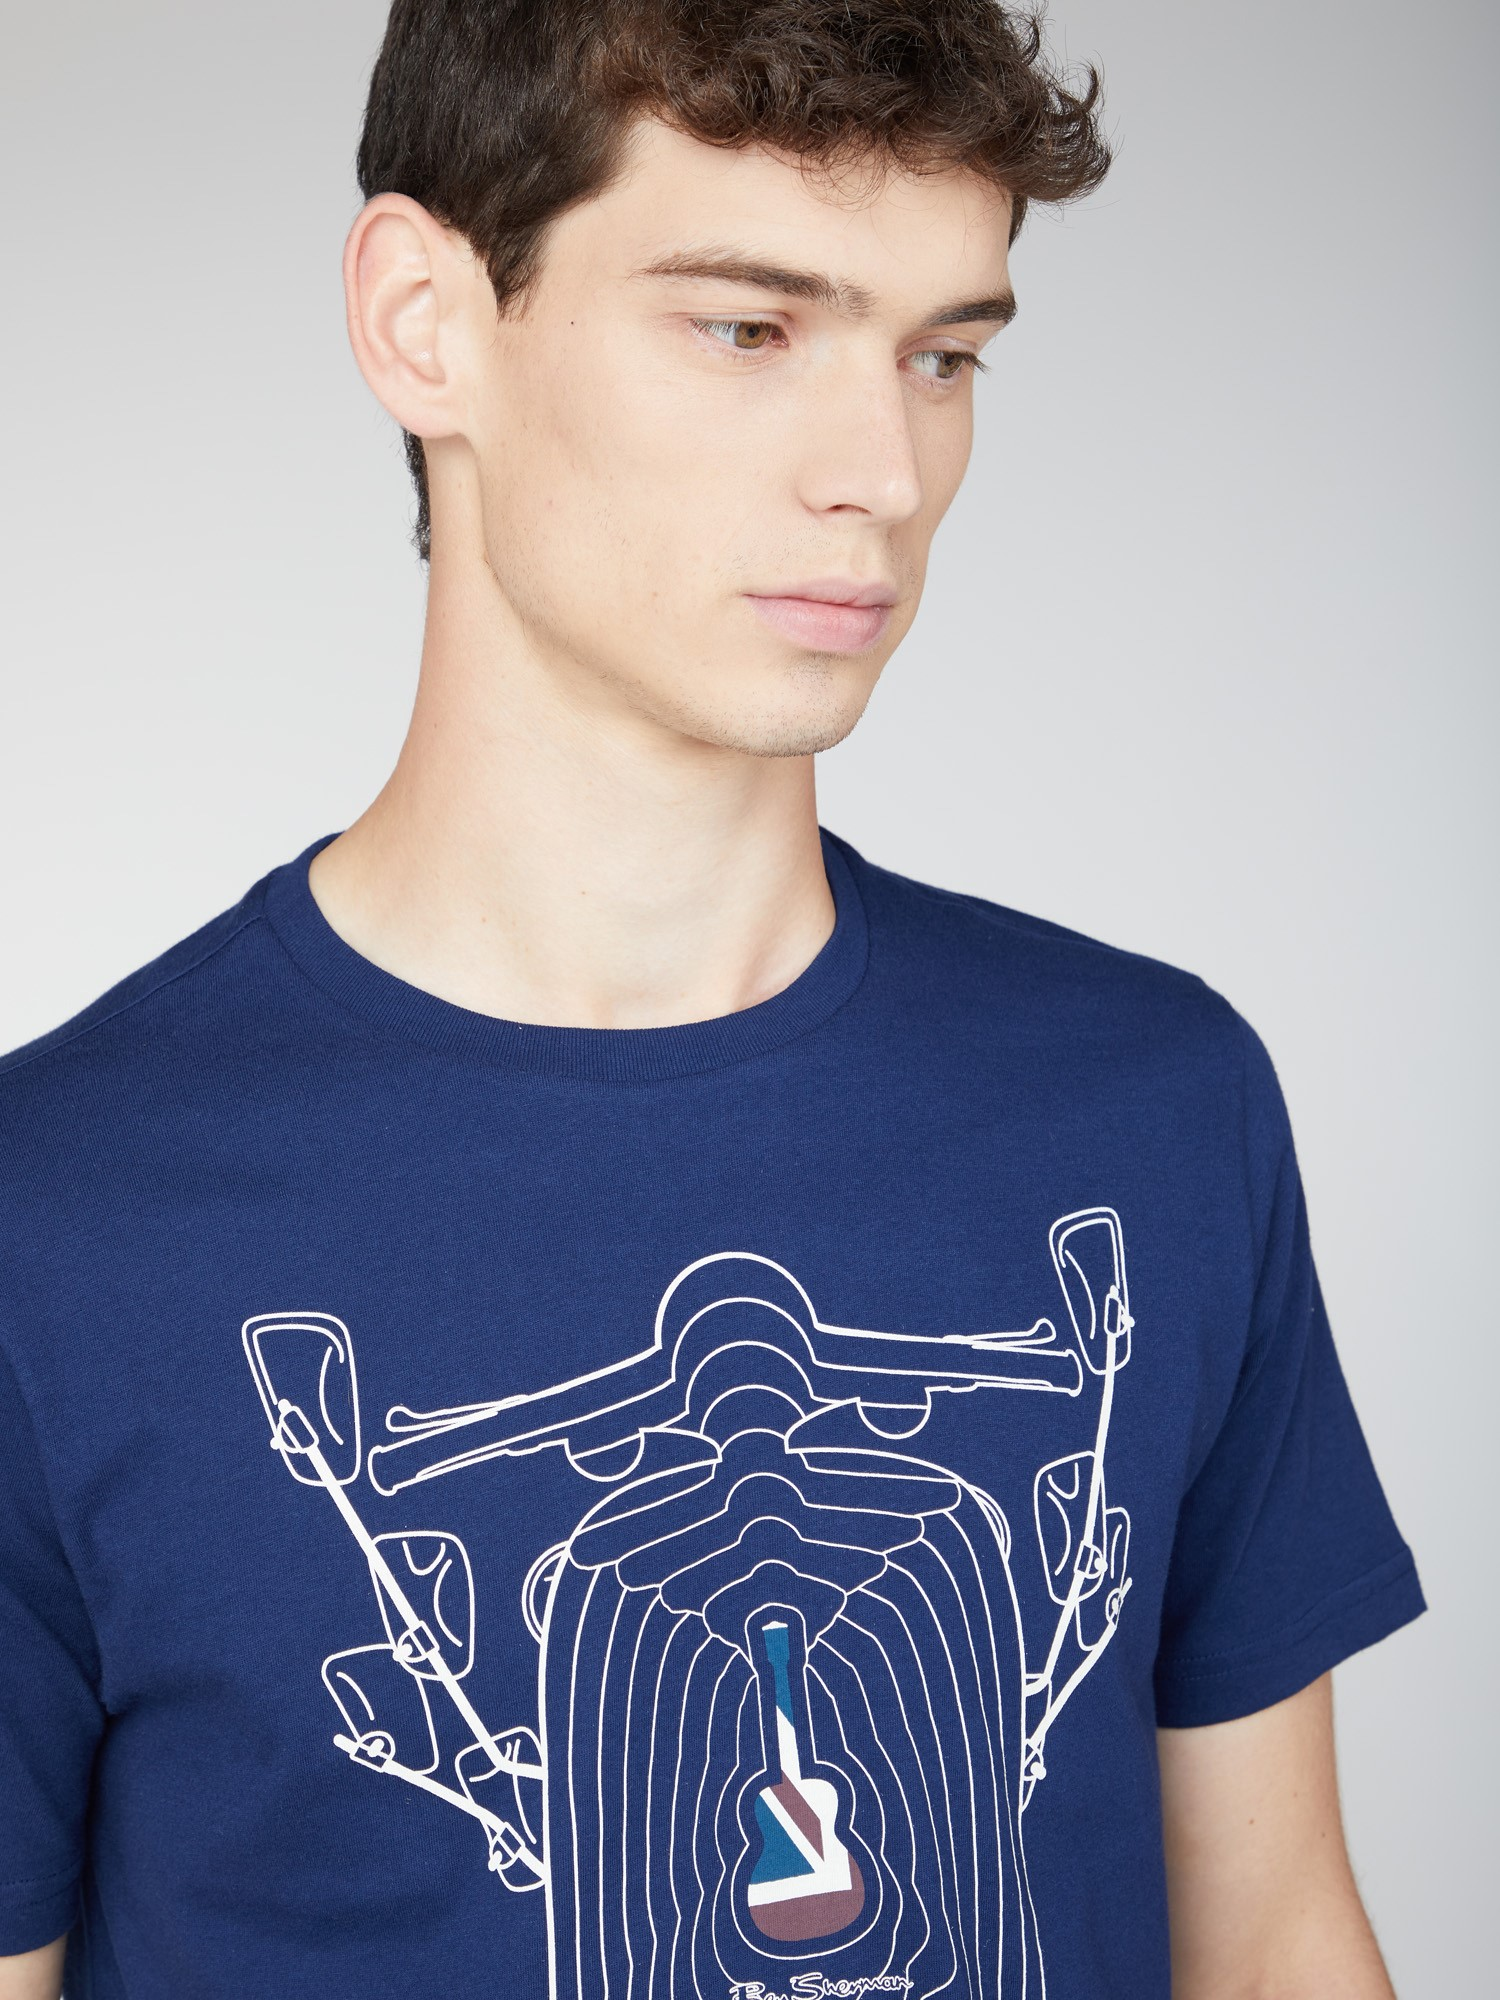 Scooter Echo Graphic Tee